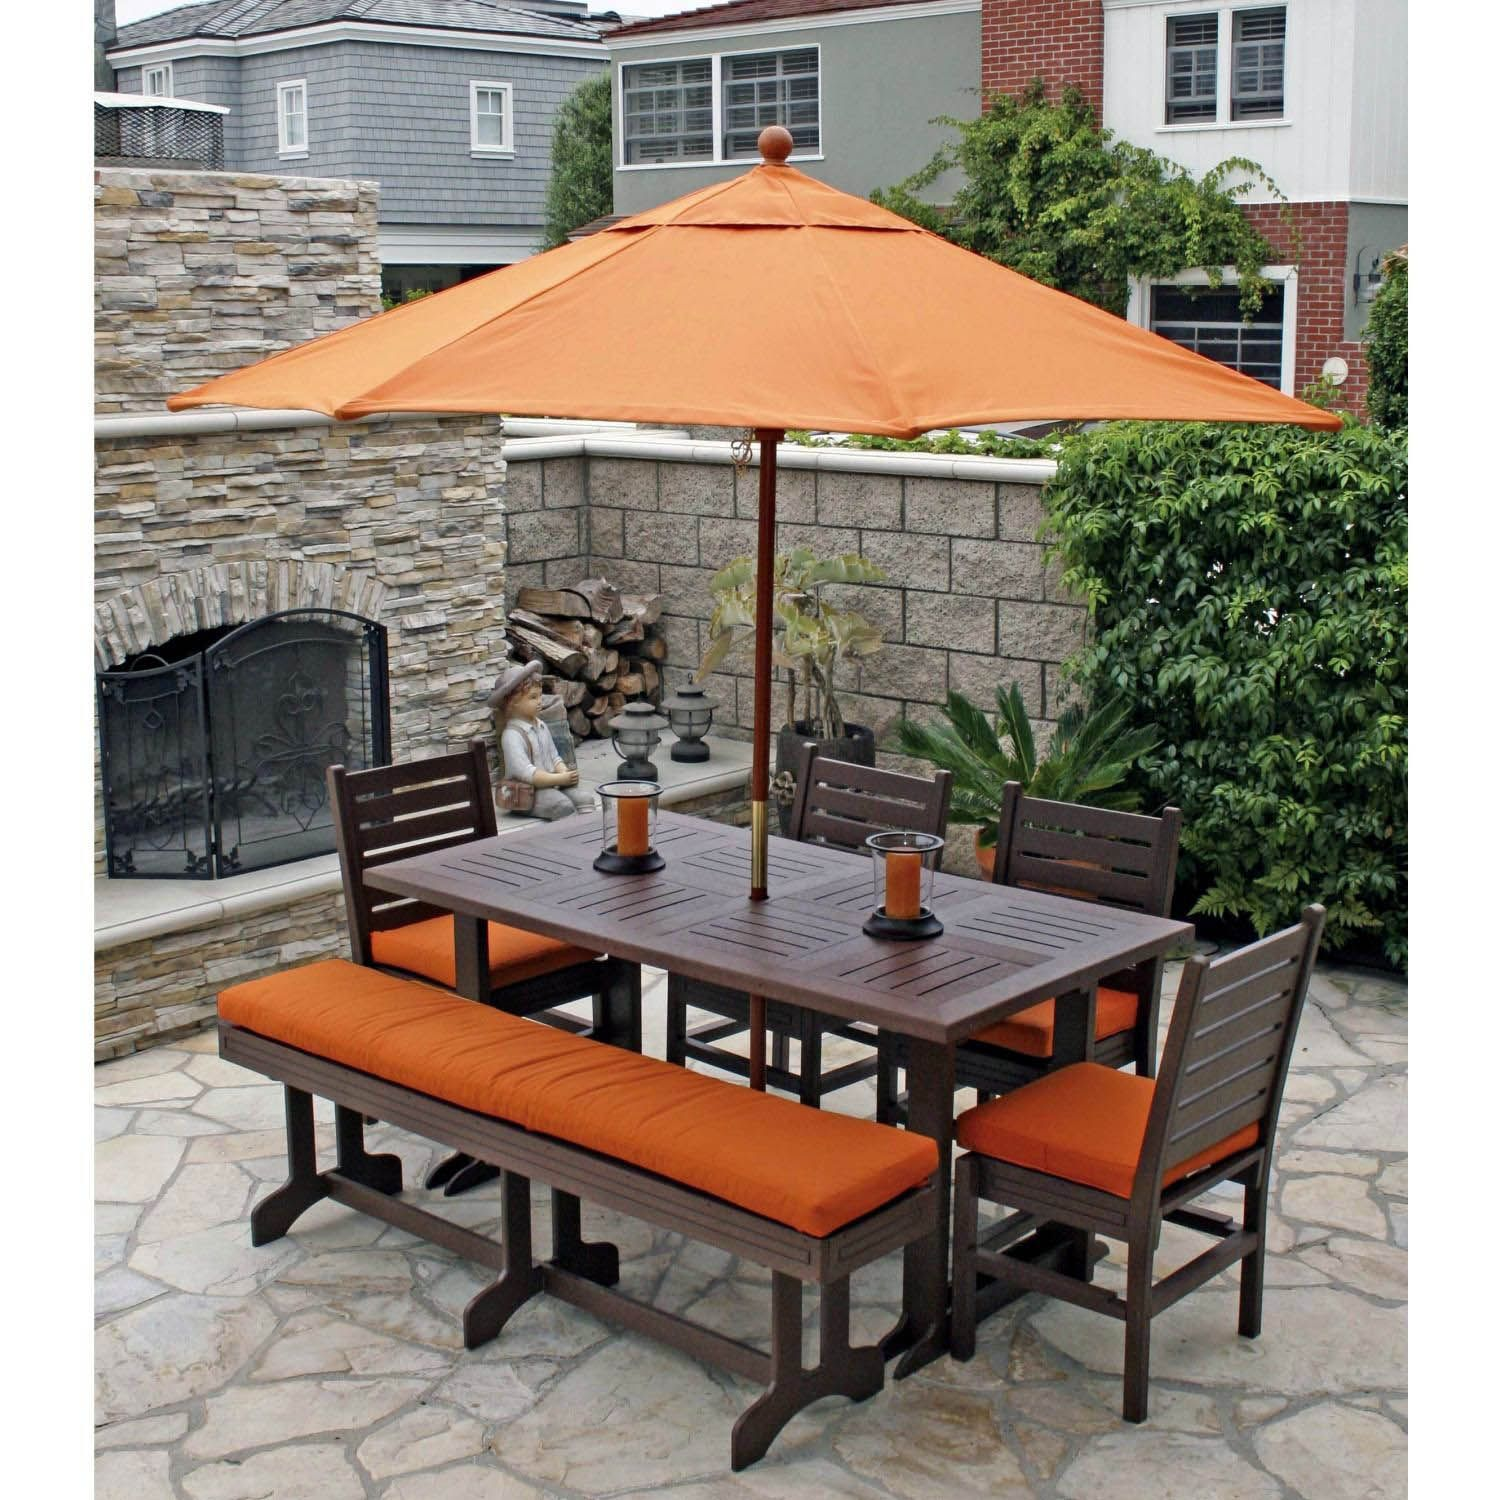 Top 2019 Patio Furniture Discount Clearance Only On Homesable Com